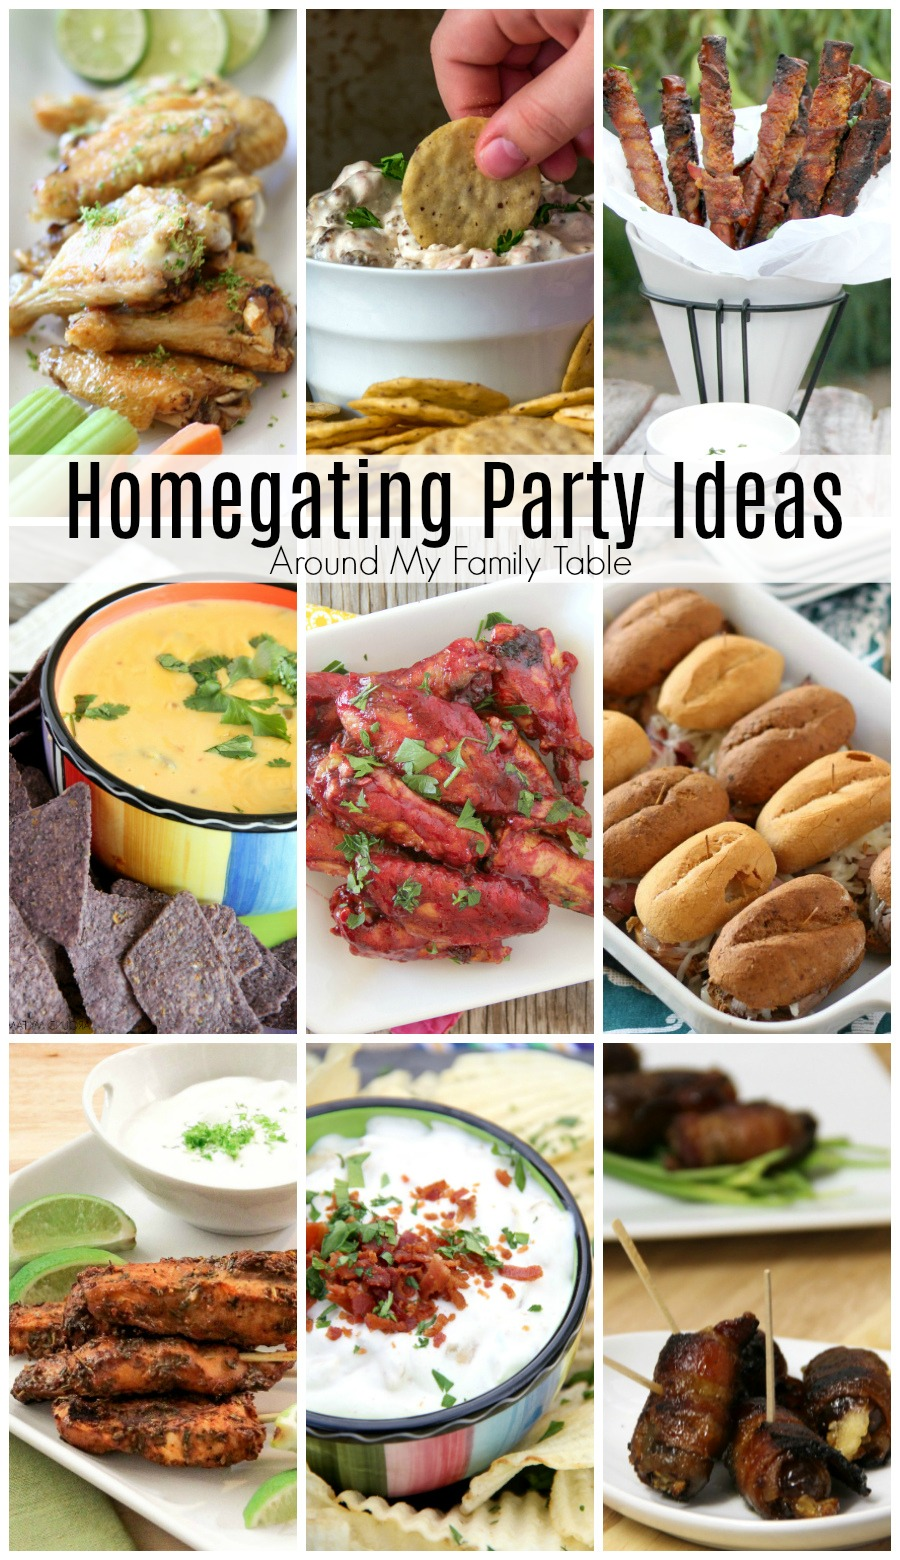 collage of delicious homegating party ideas and food